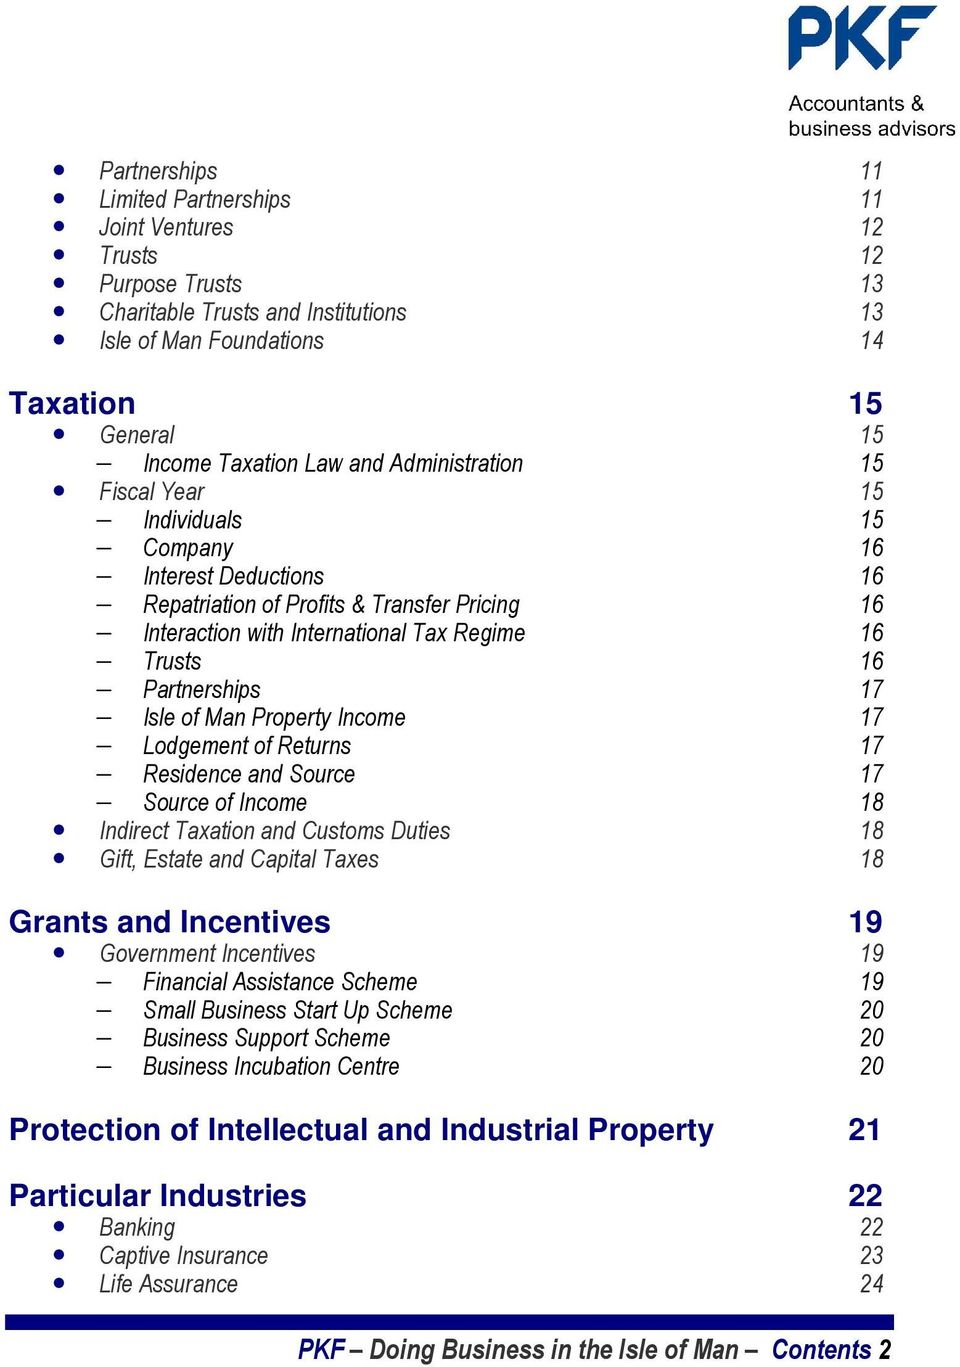 17 Isle of Man Property Income 17 Lodgement of Returns 17 Residence and Source 17 Source of Income 18 Indirect Taxation and Customs Duties 18 Gift, Estate and Capital Taxes 18 Grants and Incentives